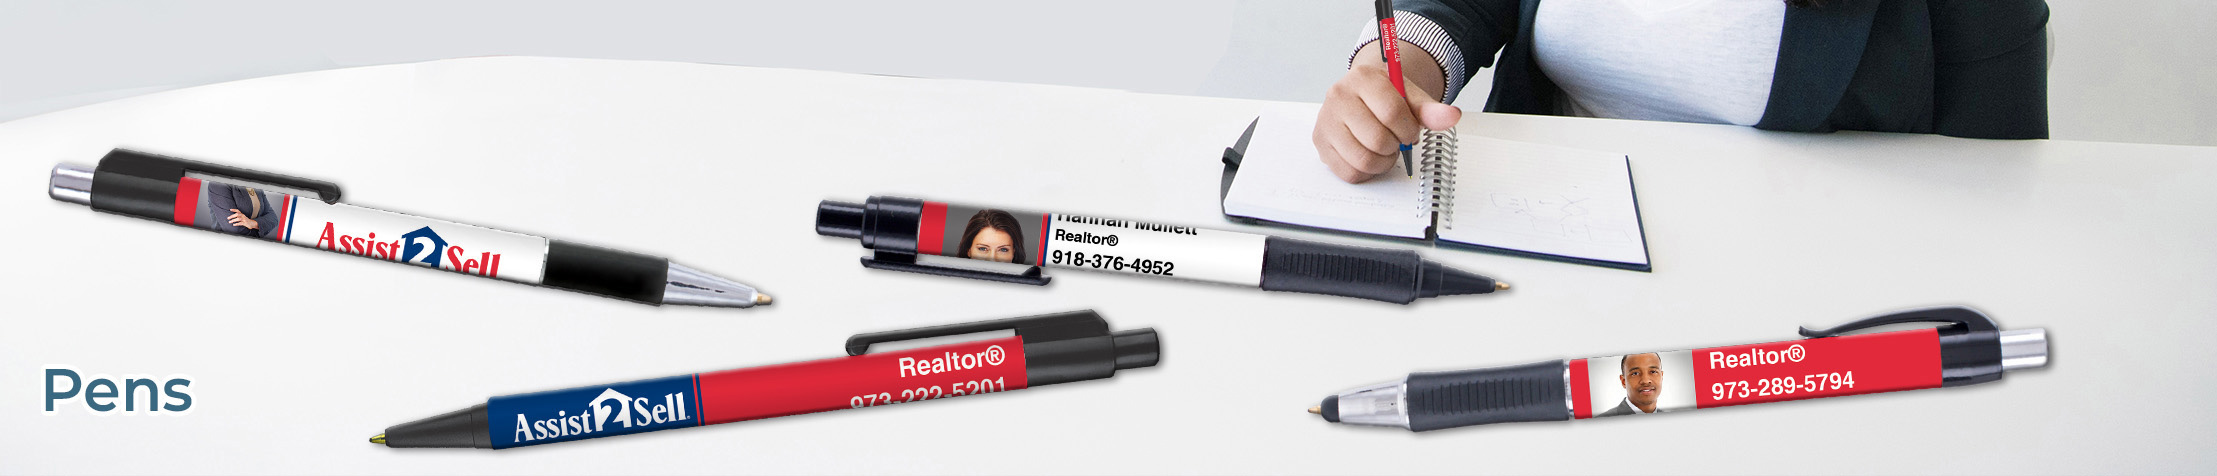 Assit2Sell Real Estate Pens - Assit2Sell Real Estate  personalized realtor promotional products | BestPrintBuy.com